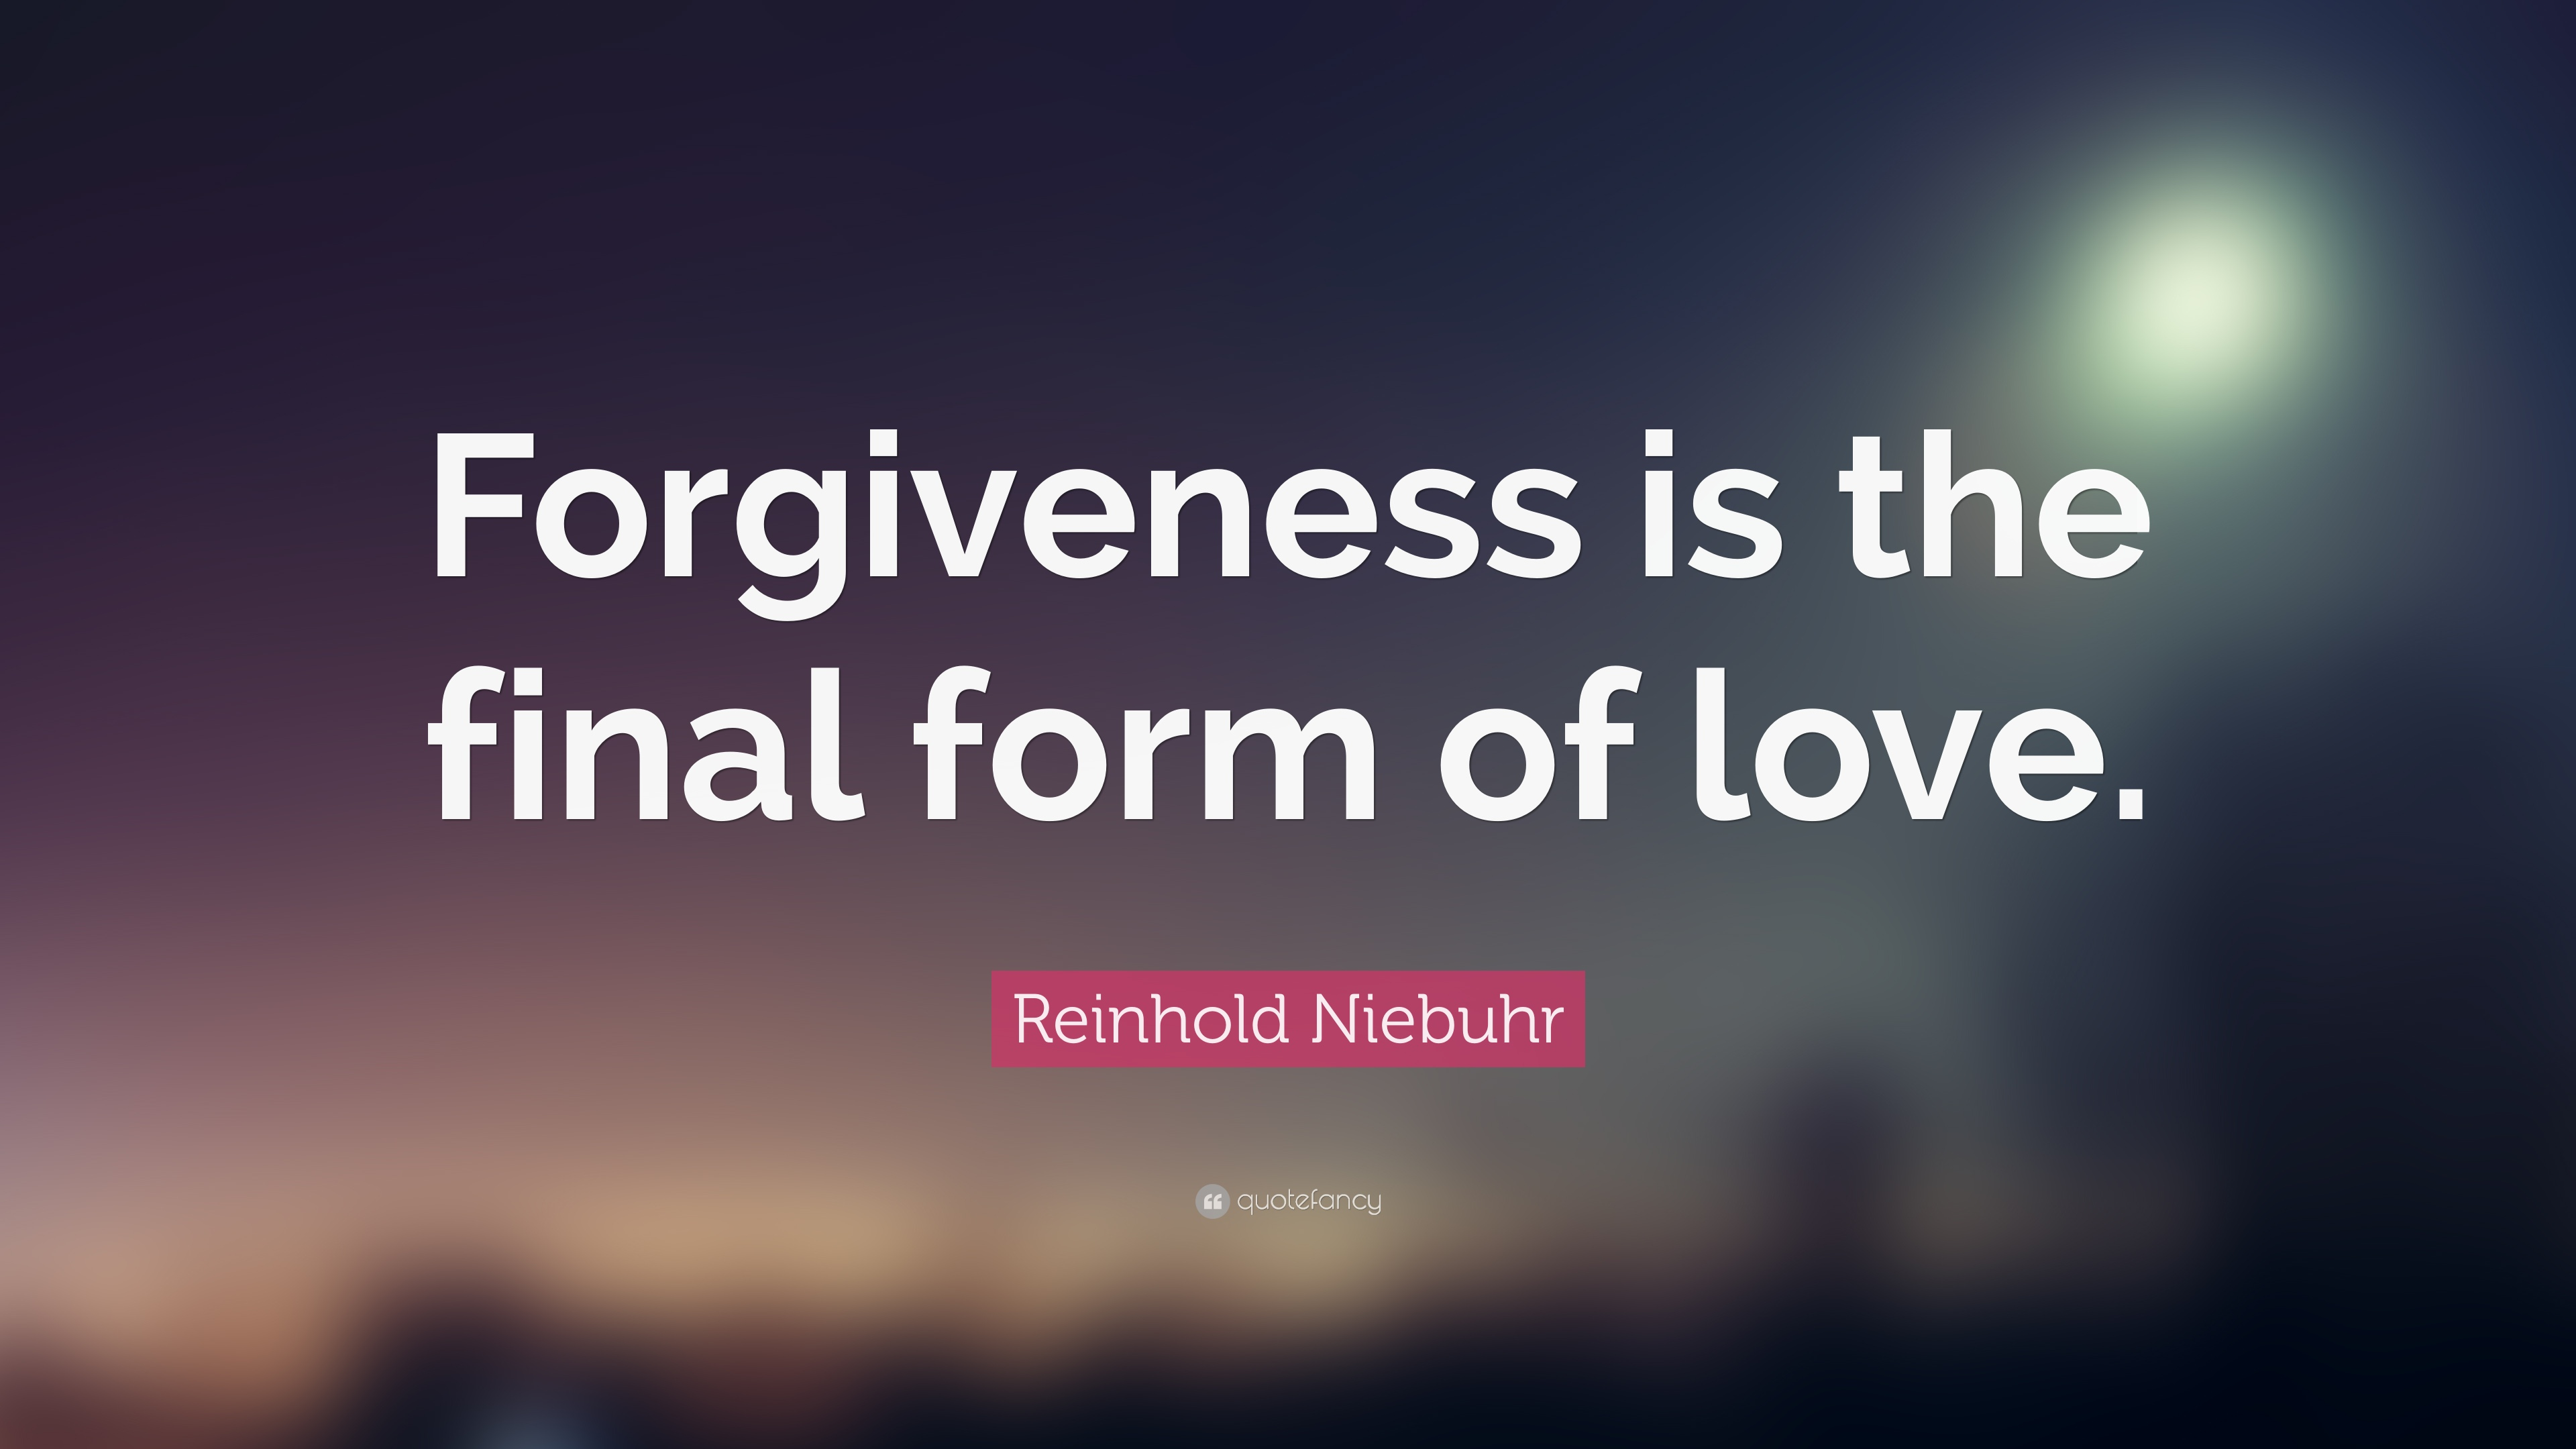 Love Forgiveness Quotes Awesome Forgiveness Quotes 40 Wallpapers  Quotefancy